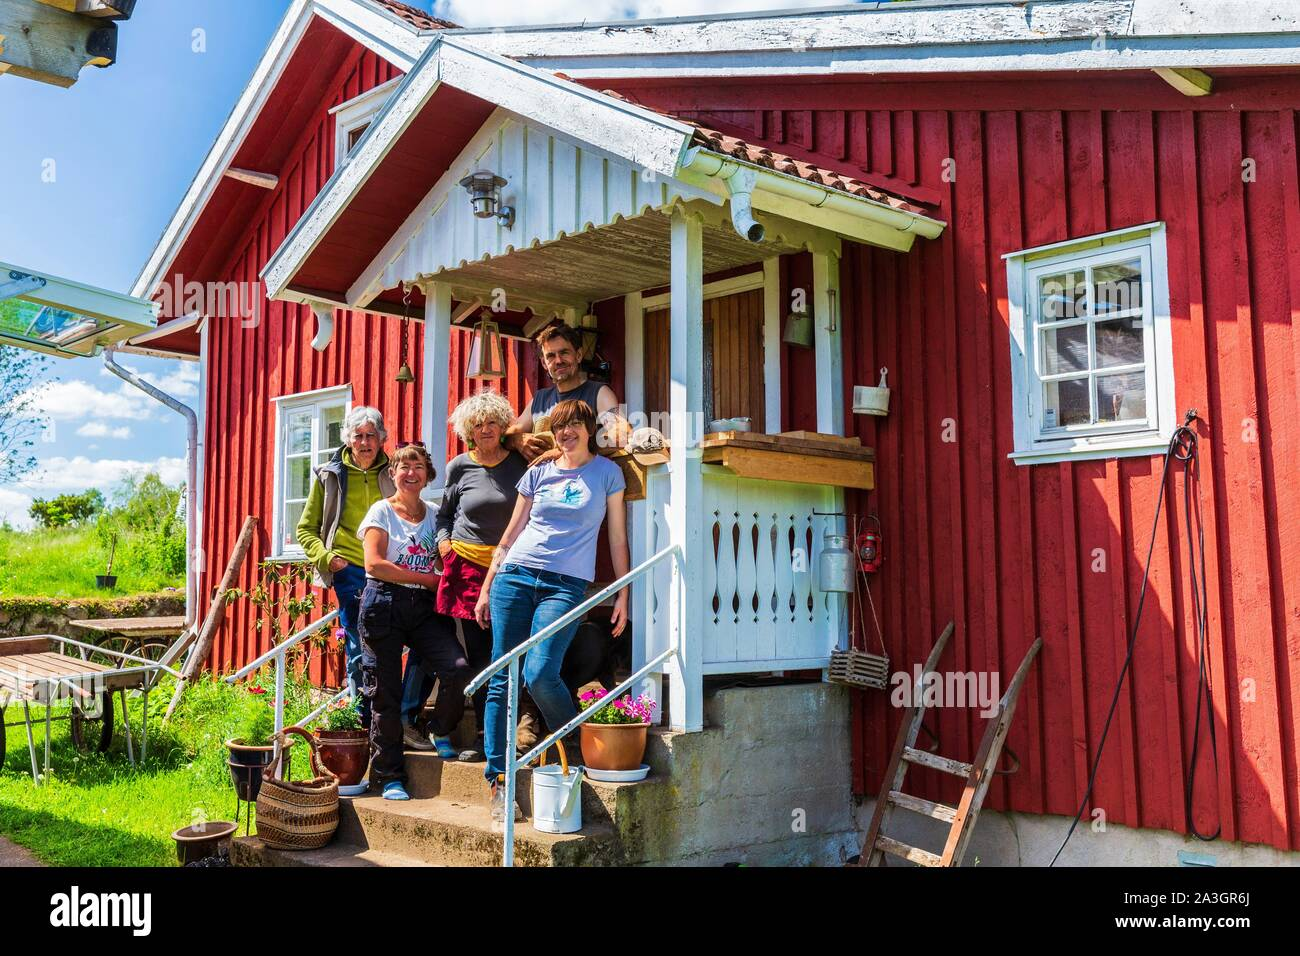 Sweden County Of Vastra Gotaland Hokerum Ulricehamn Hamlet Rochat Family Report The Front House With Elisabeth Pierre And Her Parents And Sonia Stock Photo Alamy